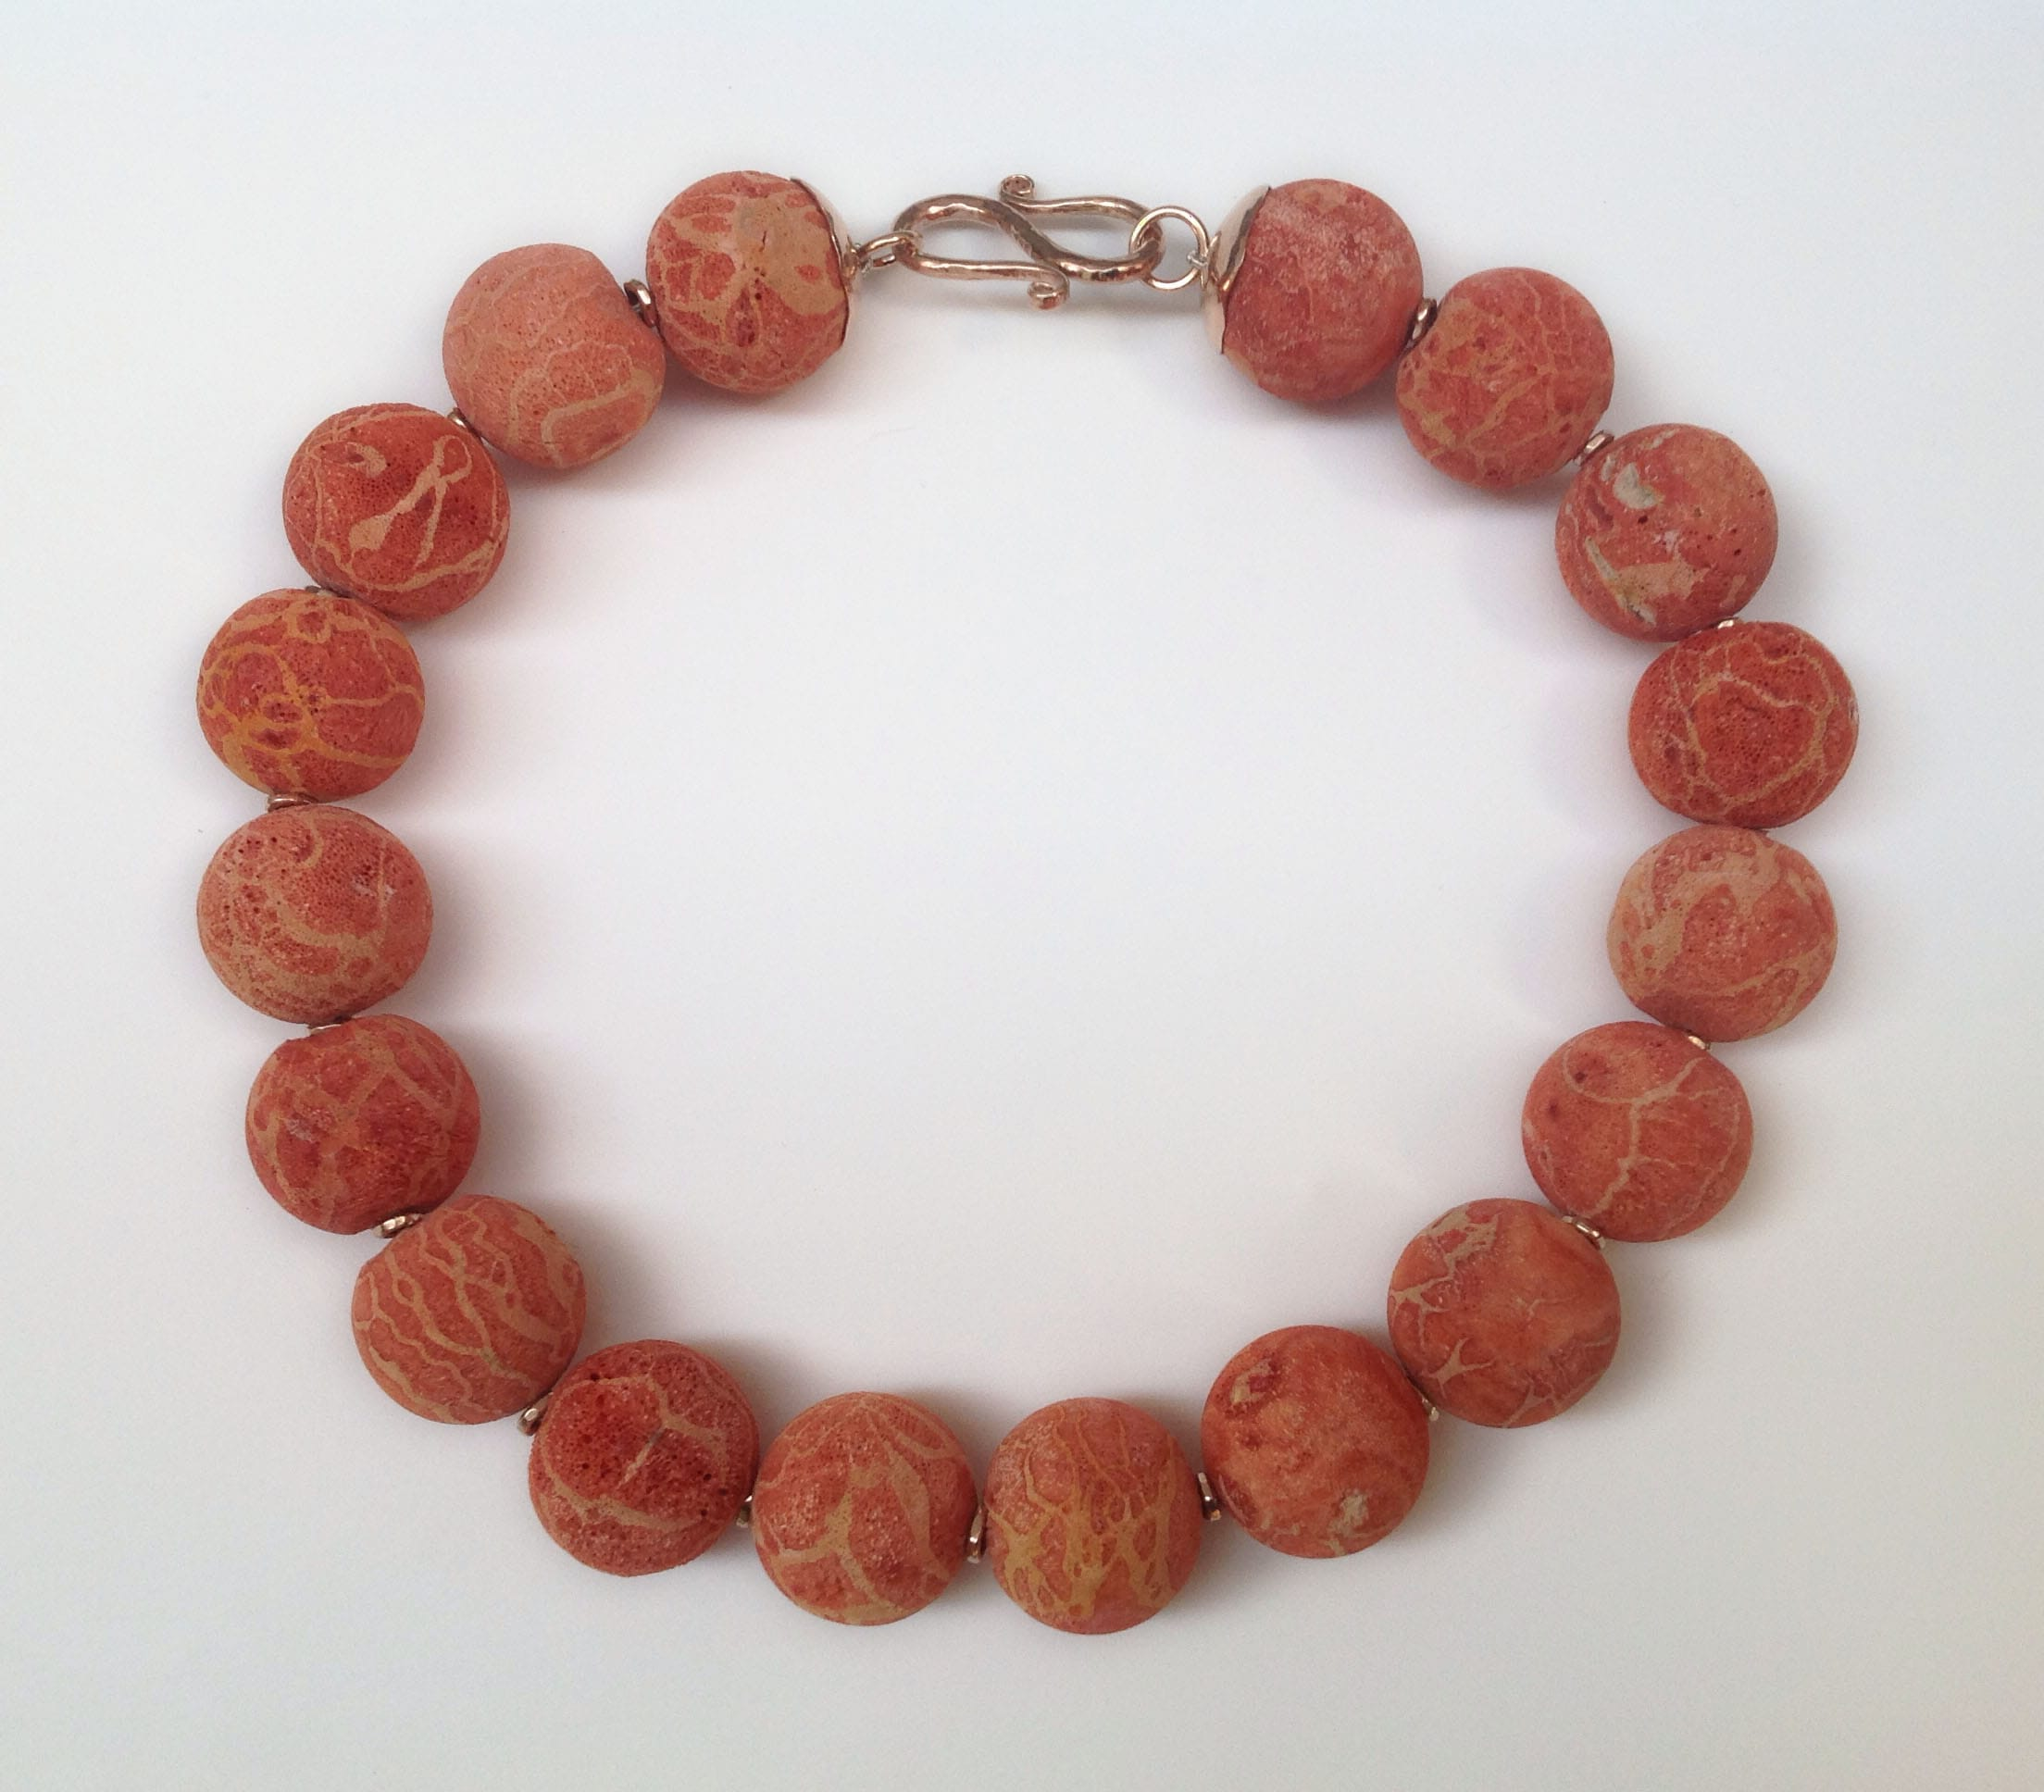 Large round sponge coral beads, 9 carat red gold beads and clasp